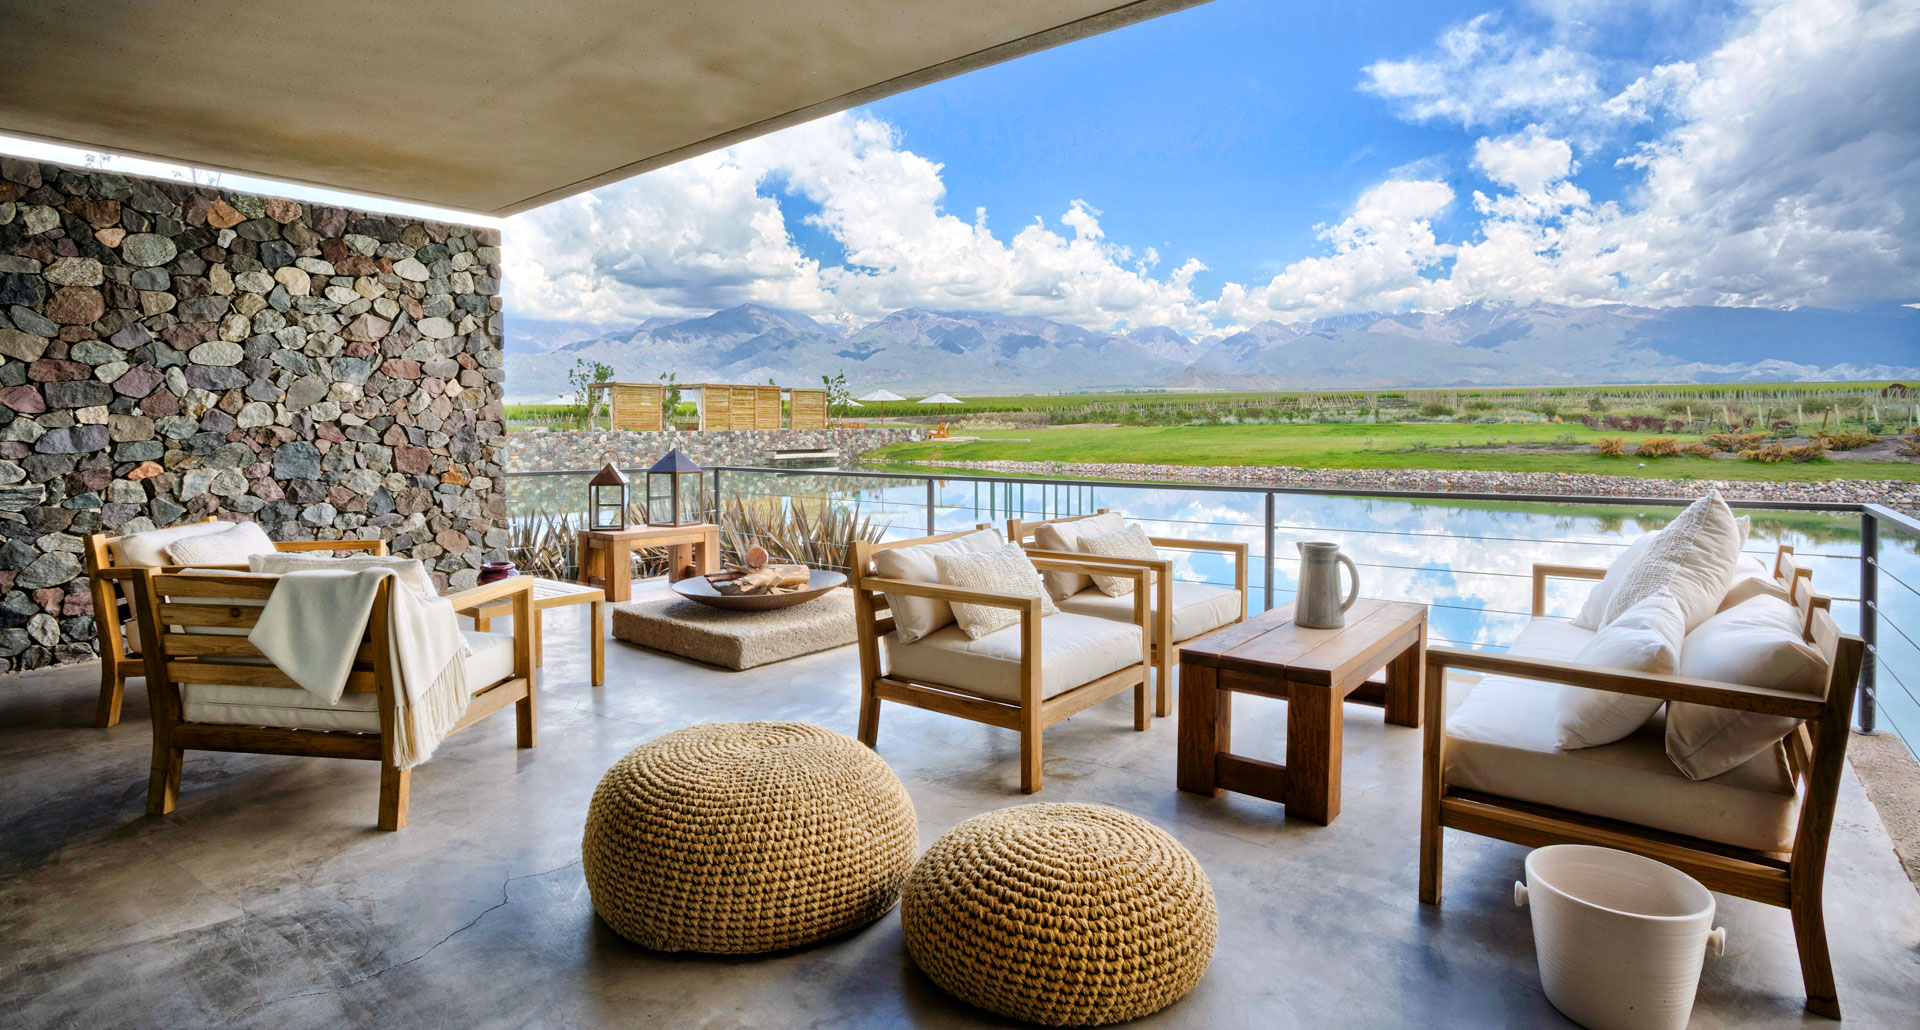 The Vines Resort & Spa - boutique hotel in Tunuyan